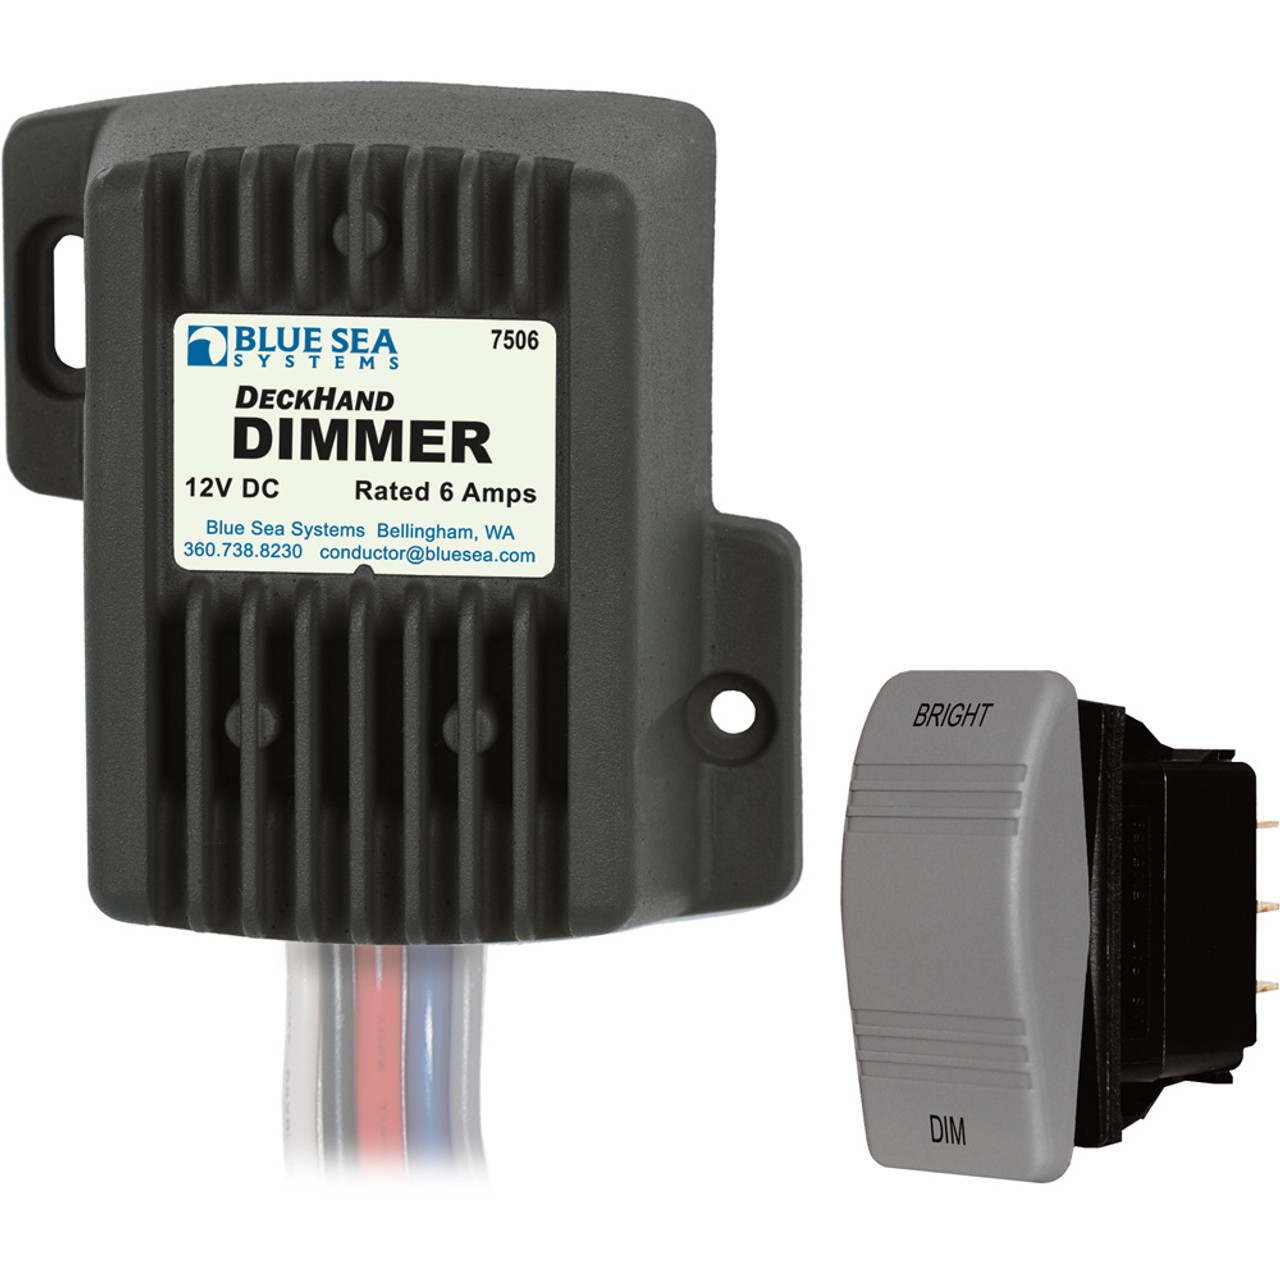 Blue Sea 7506 Deckhand Dimmer - 6AMP/12V